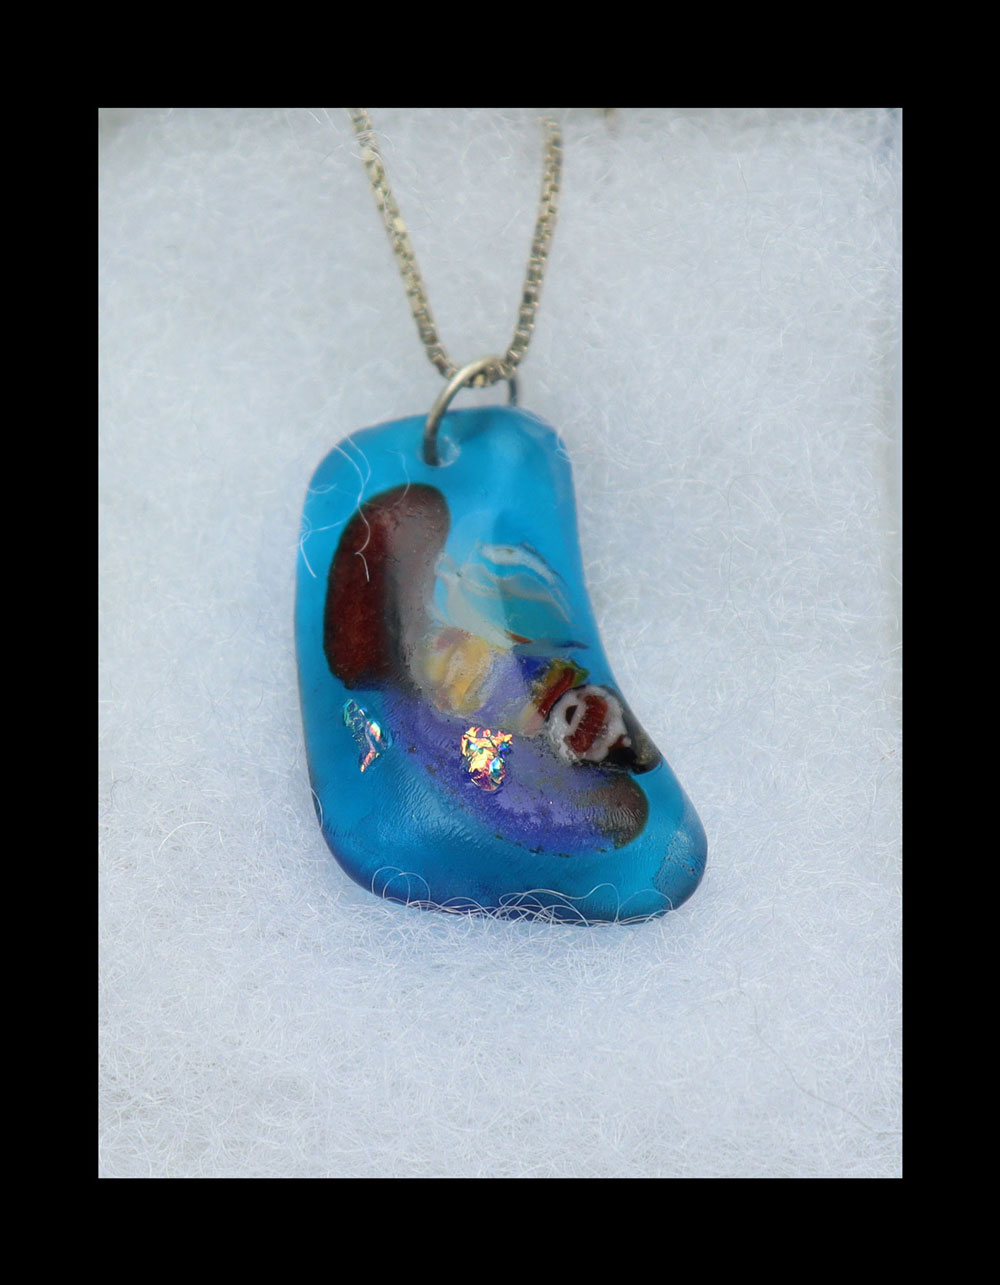 Fused glass sterling silver  Pendant Image